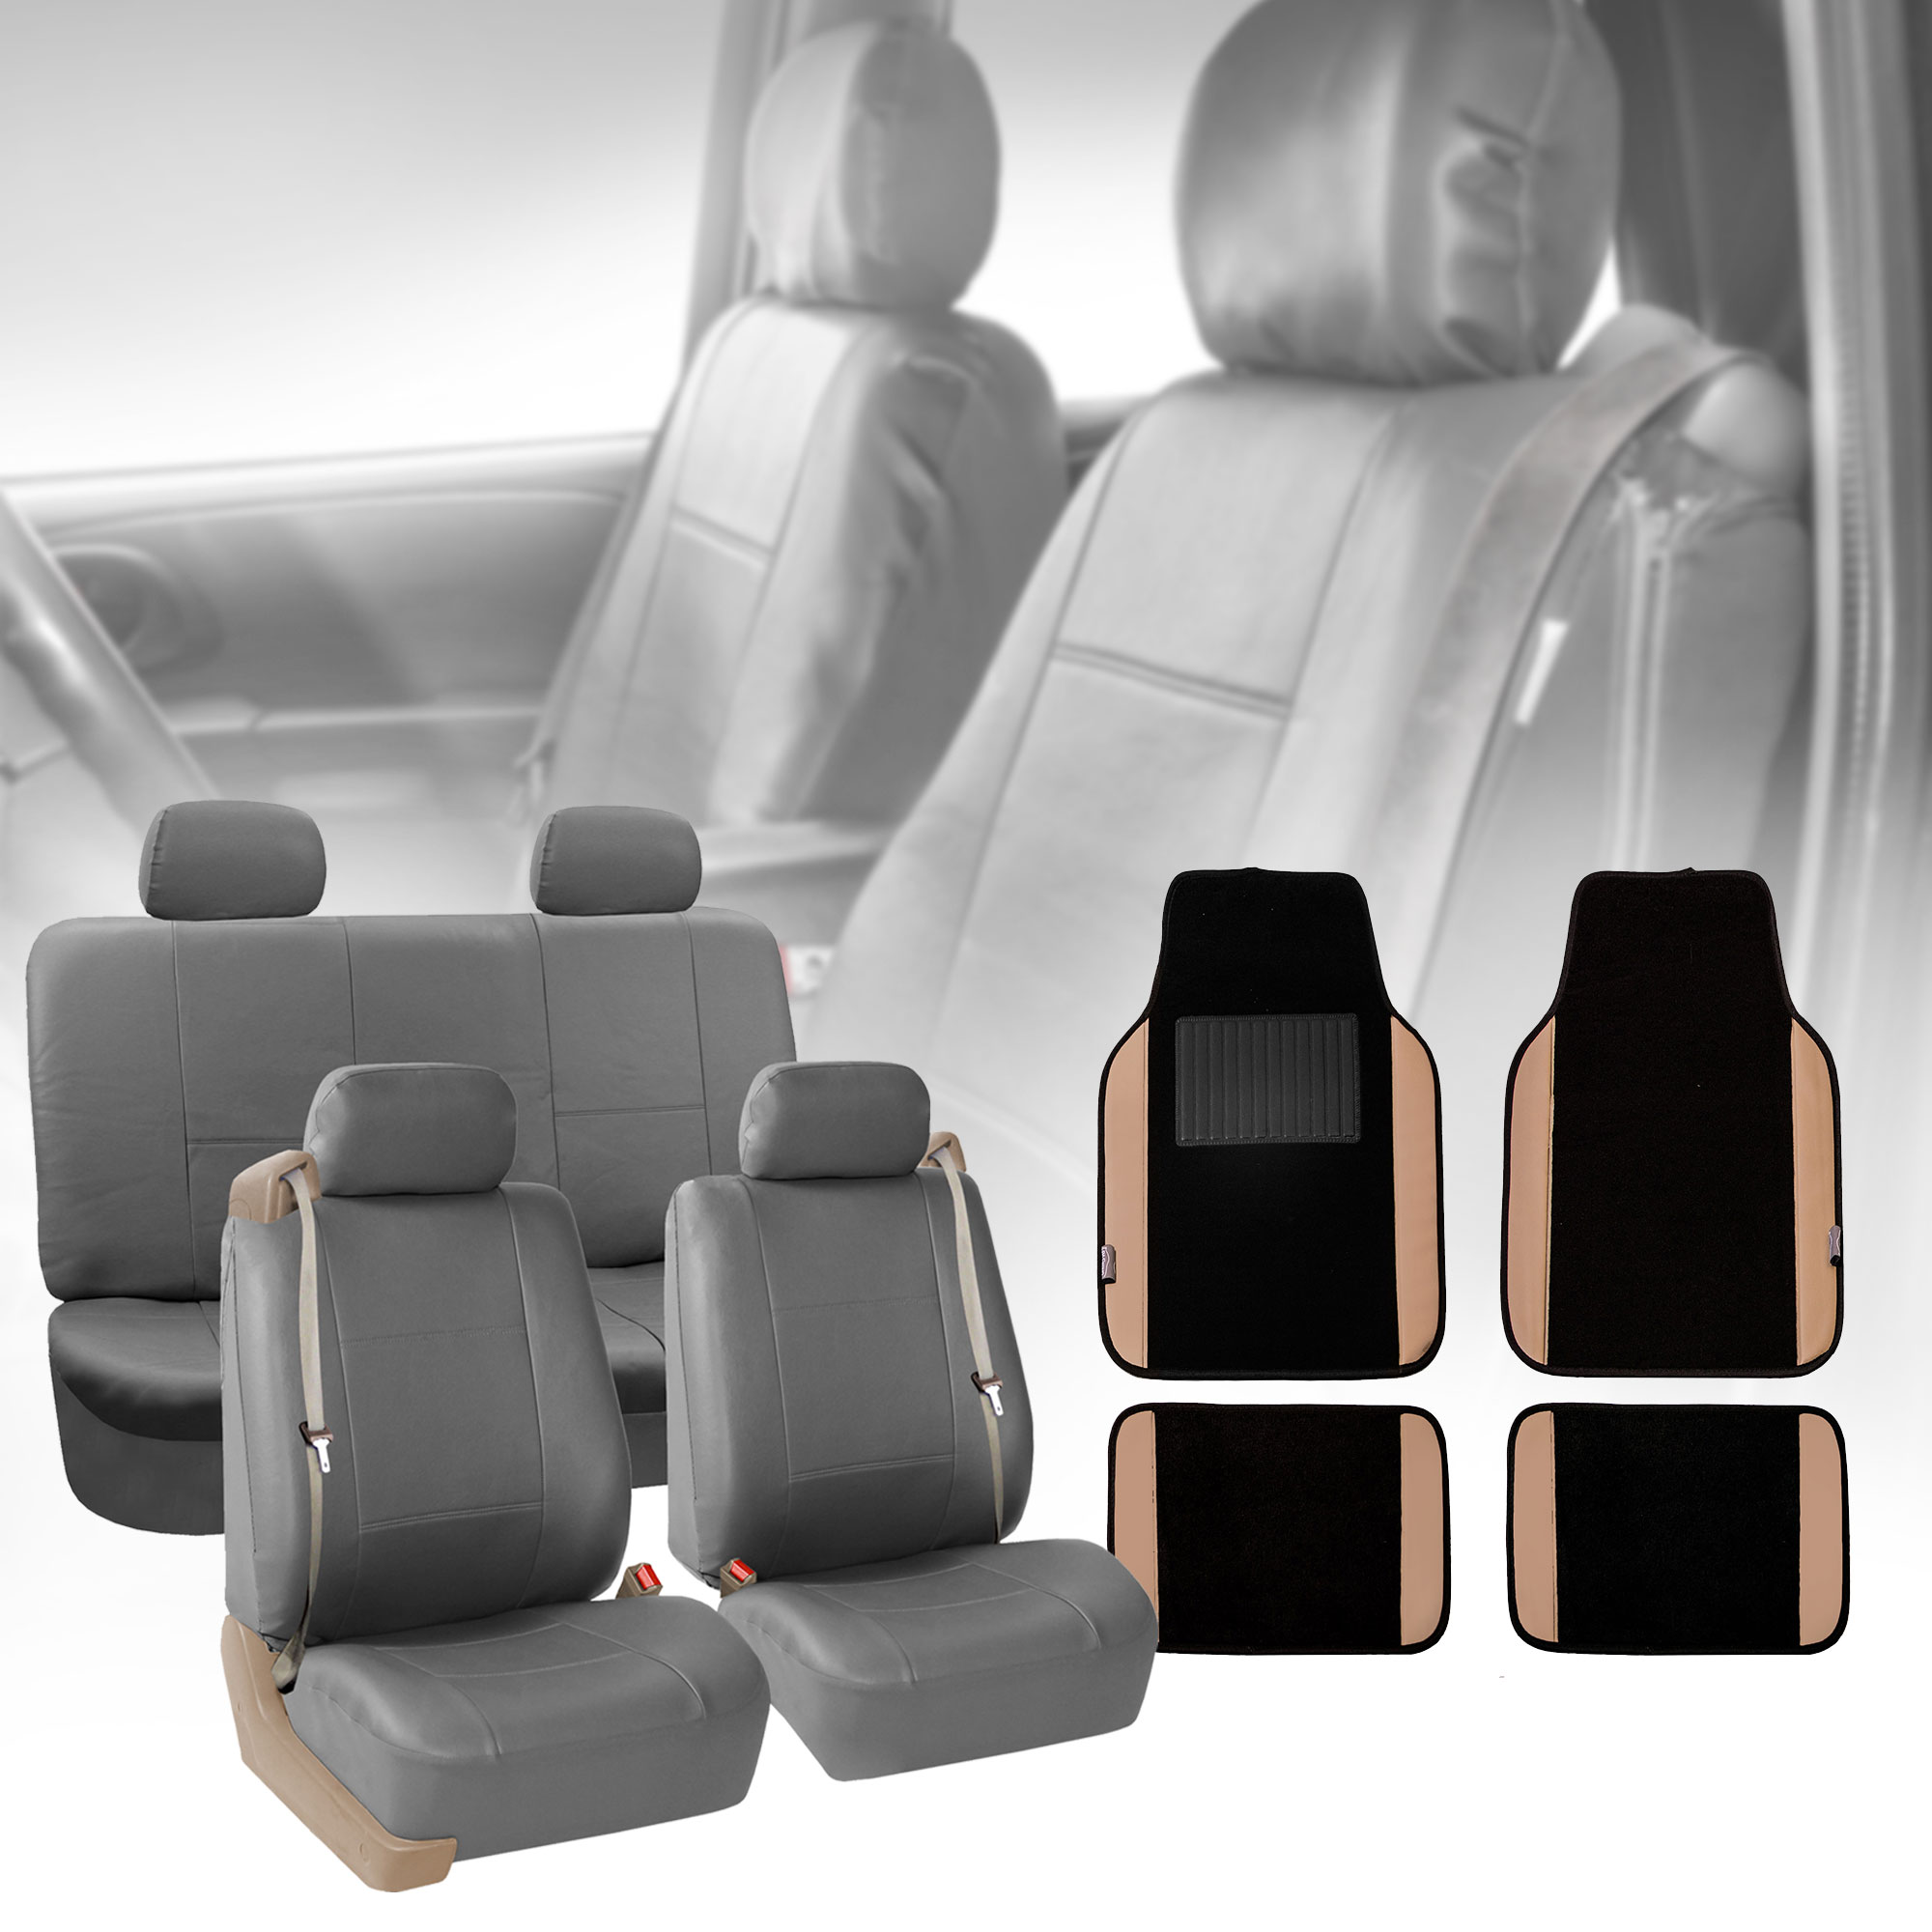 BEIGE LEATHER LOOK CAR SEAT COVERS FULL SET For BMW E30 Convertible